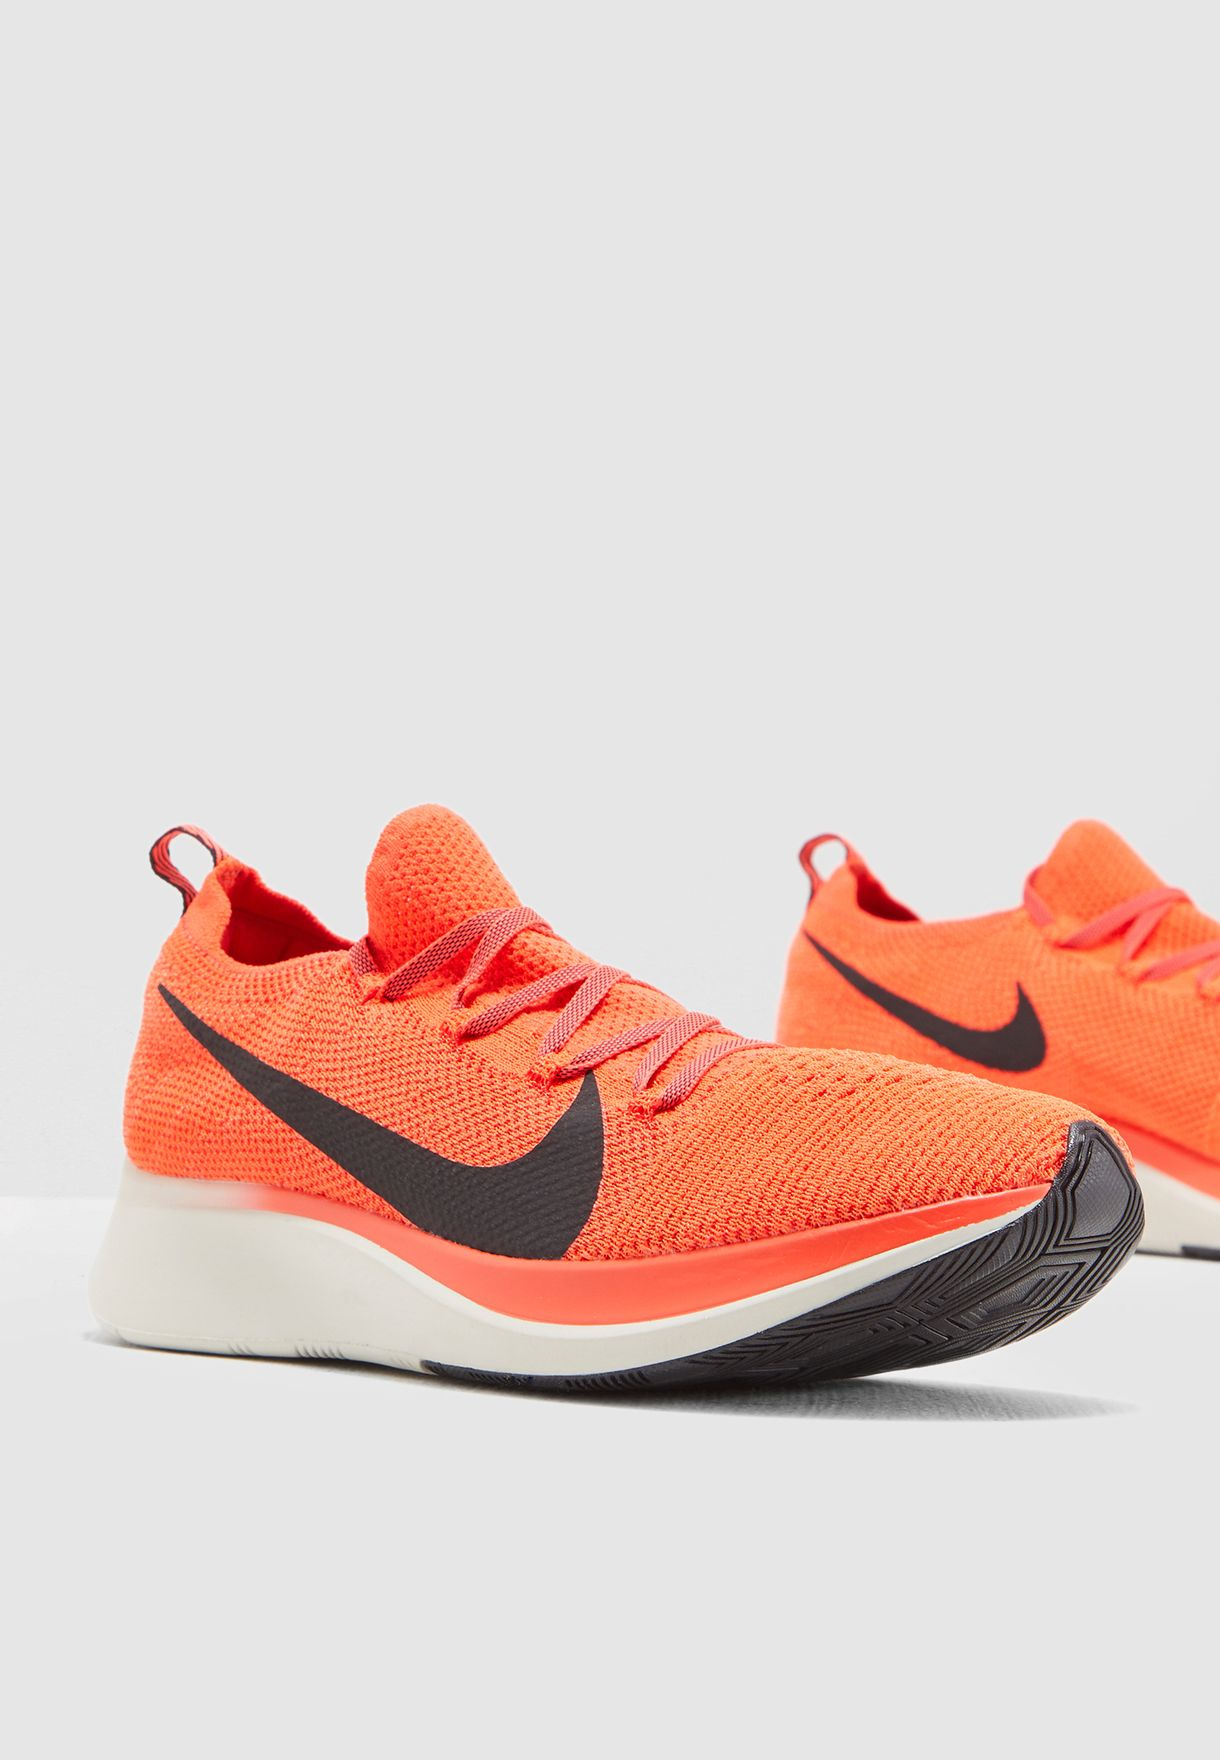 97c0b529004a Shop Nike orange Zoom Fly Flyknit AR4561-600 for Men in Saudi ...